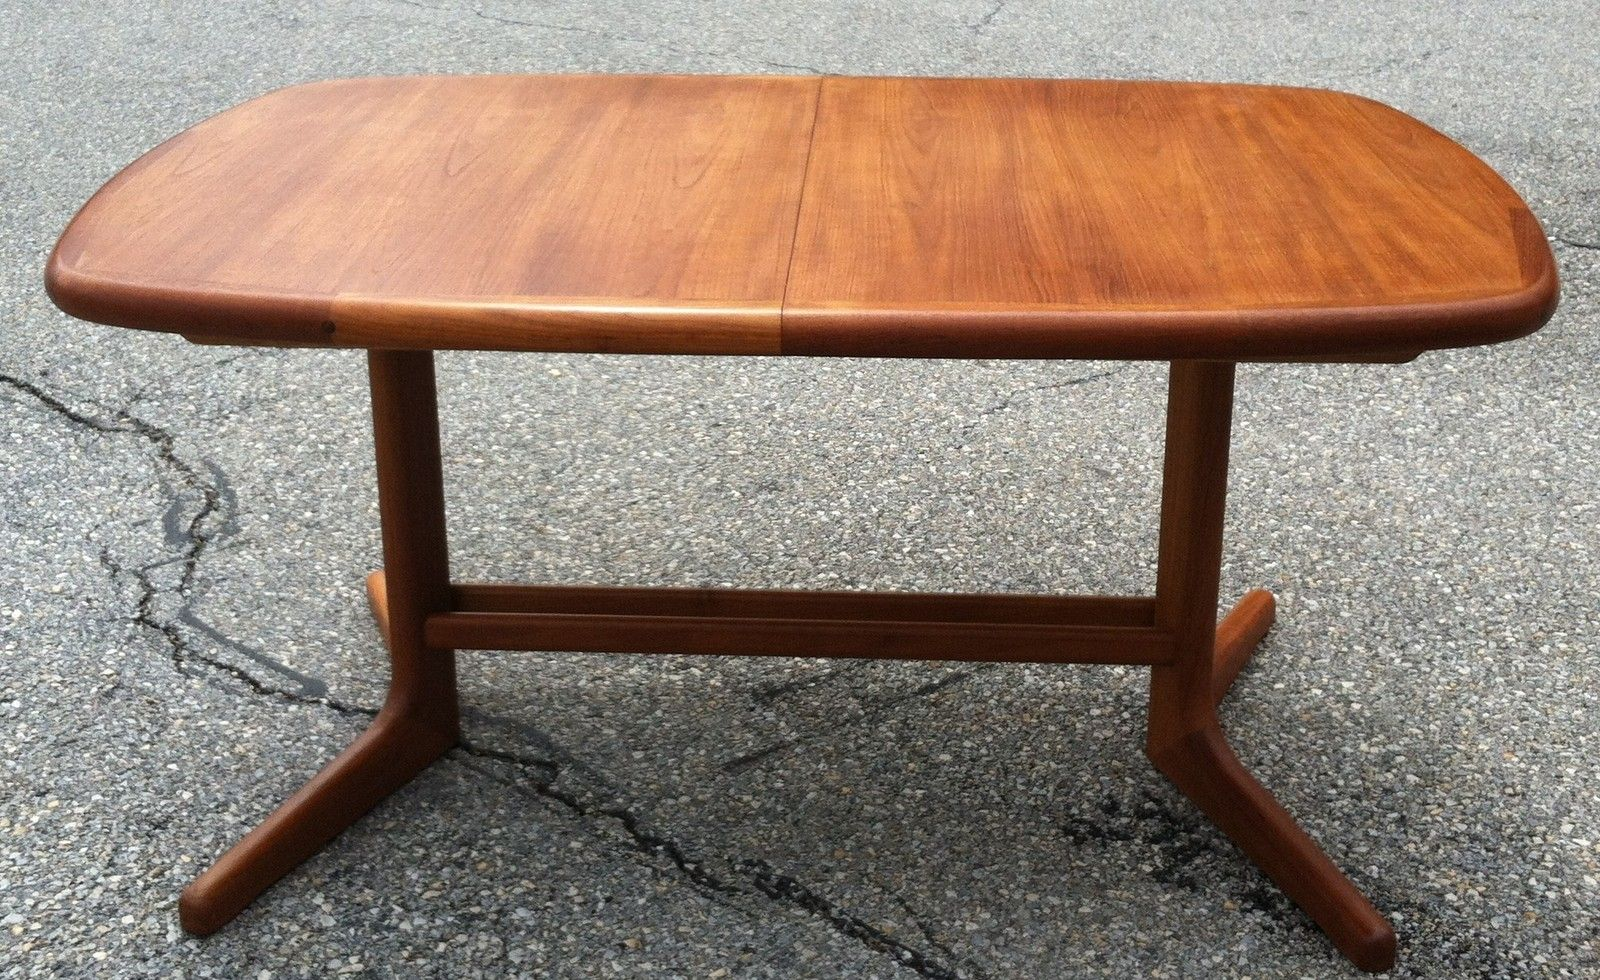 1970s Danish Teak Dining Table By Skovby Dyrlung Offered On Ebay For 1200 Teak Dining Table Dining Table Table